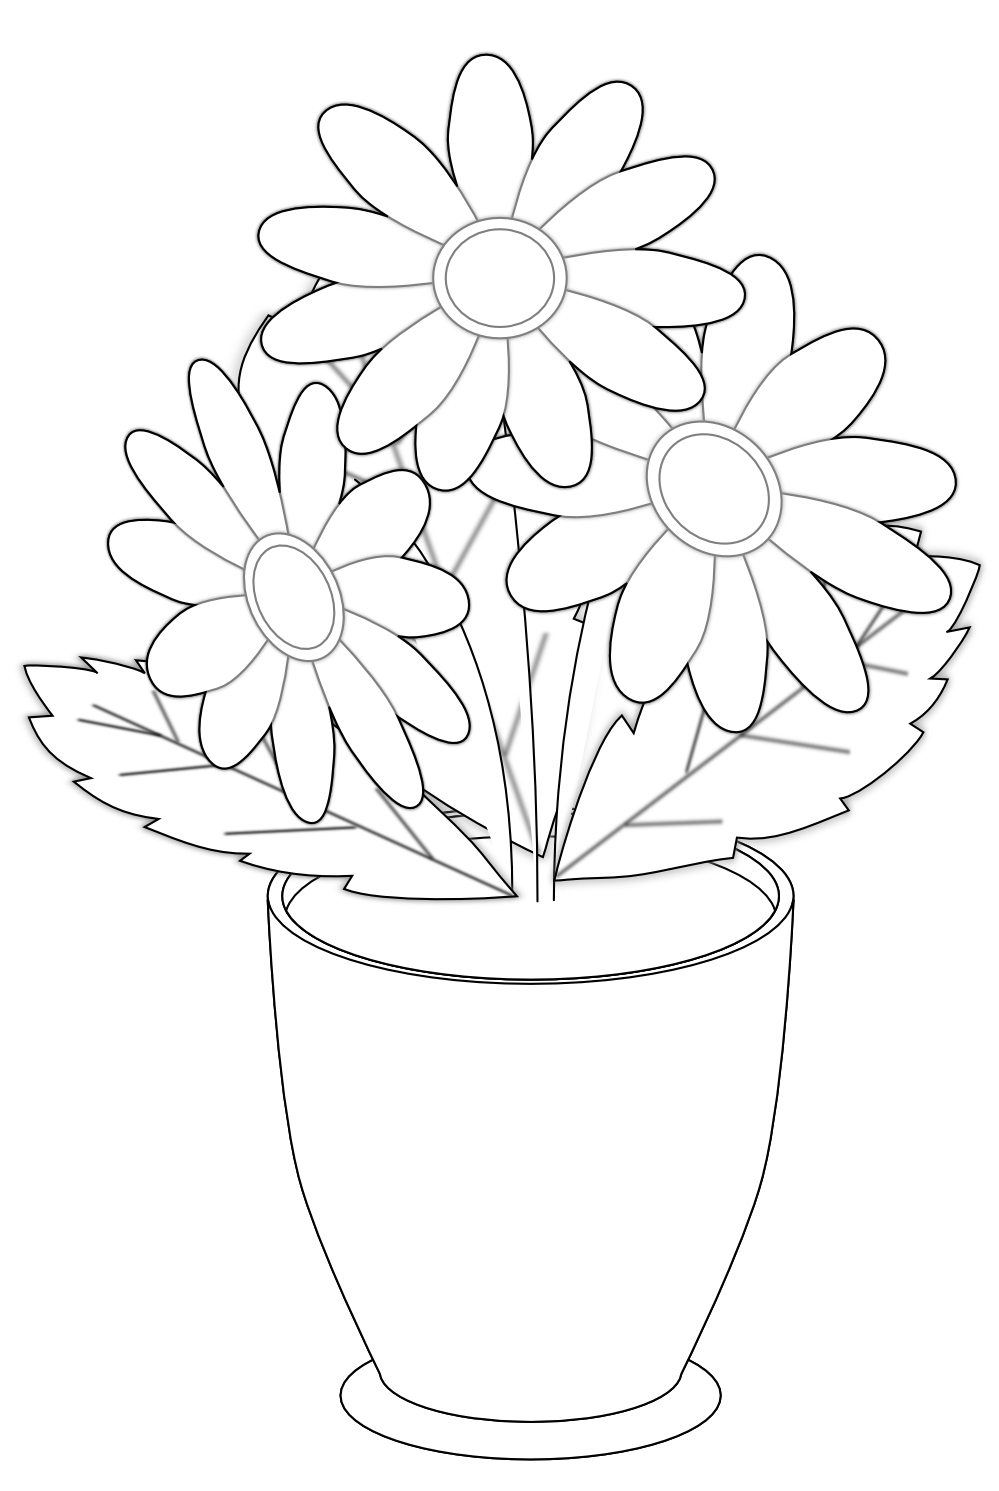 Flowers black and white free download best flowers black and white 999x1491 clipart black and white flowers in a vase mightylinksfo